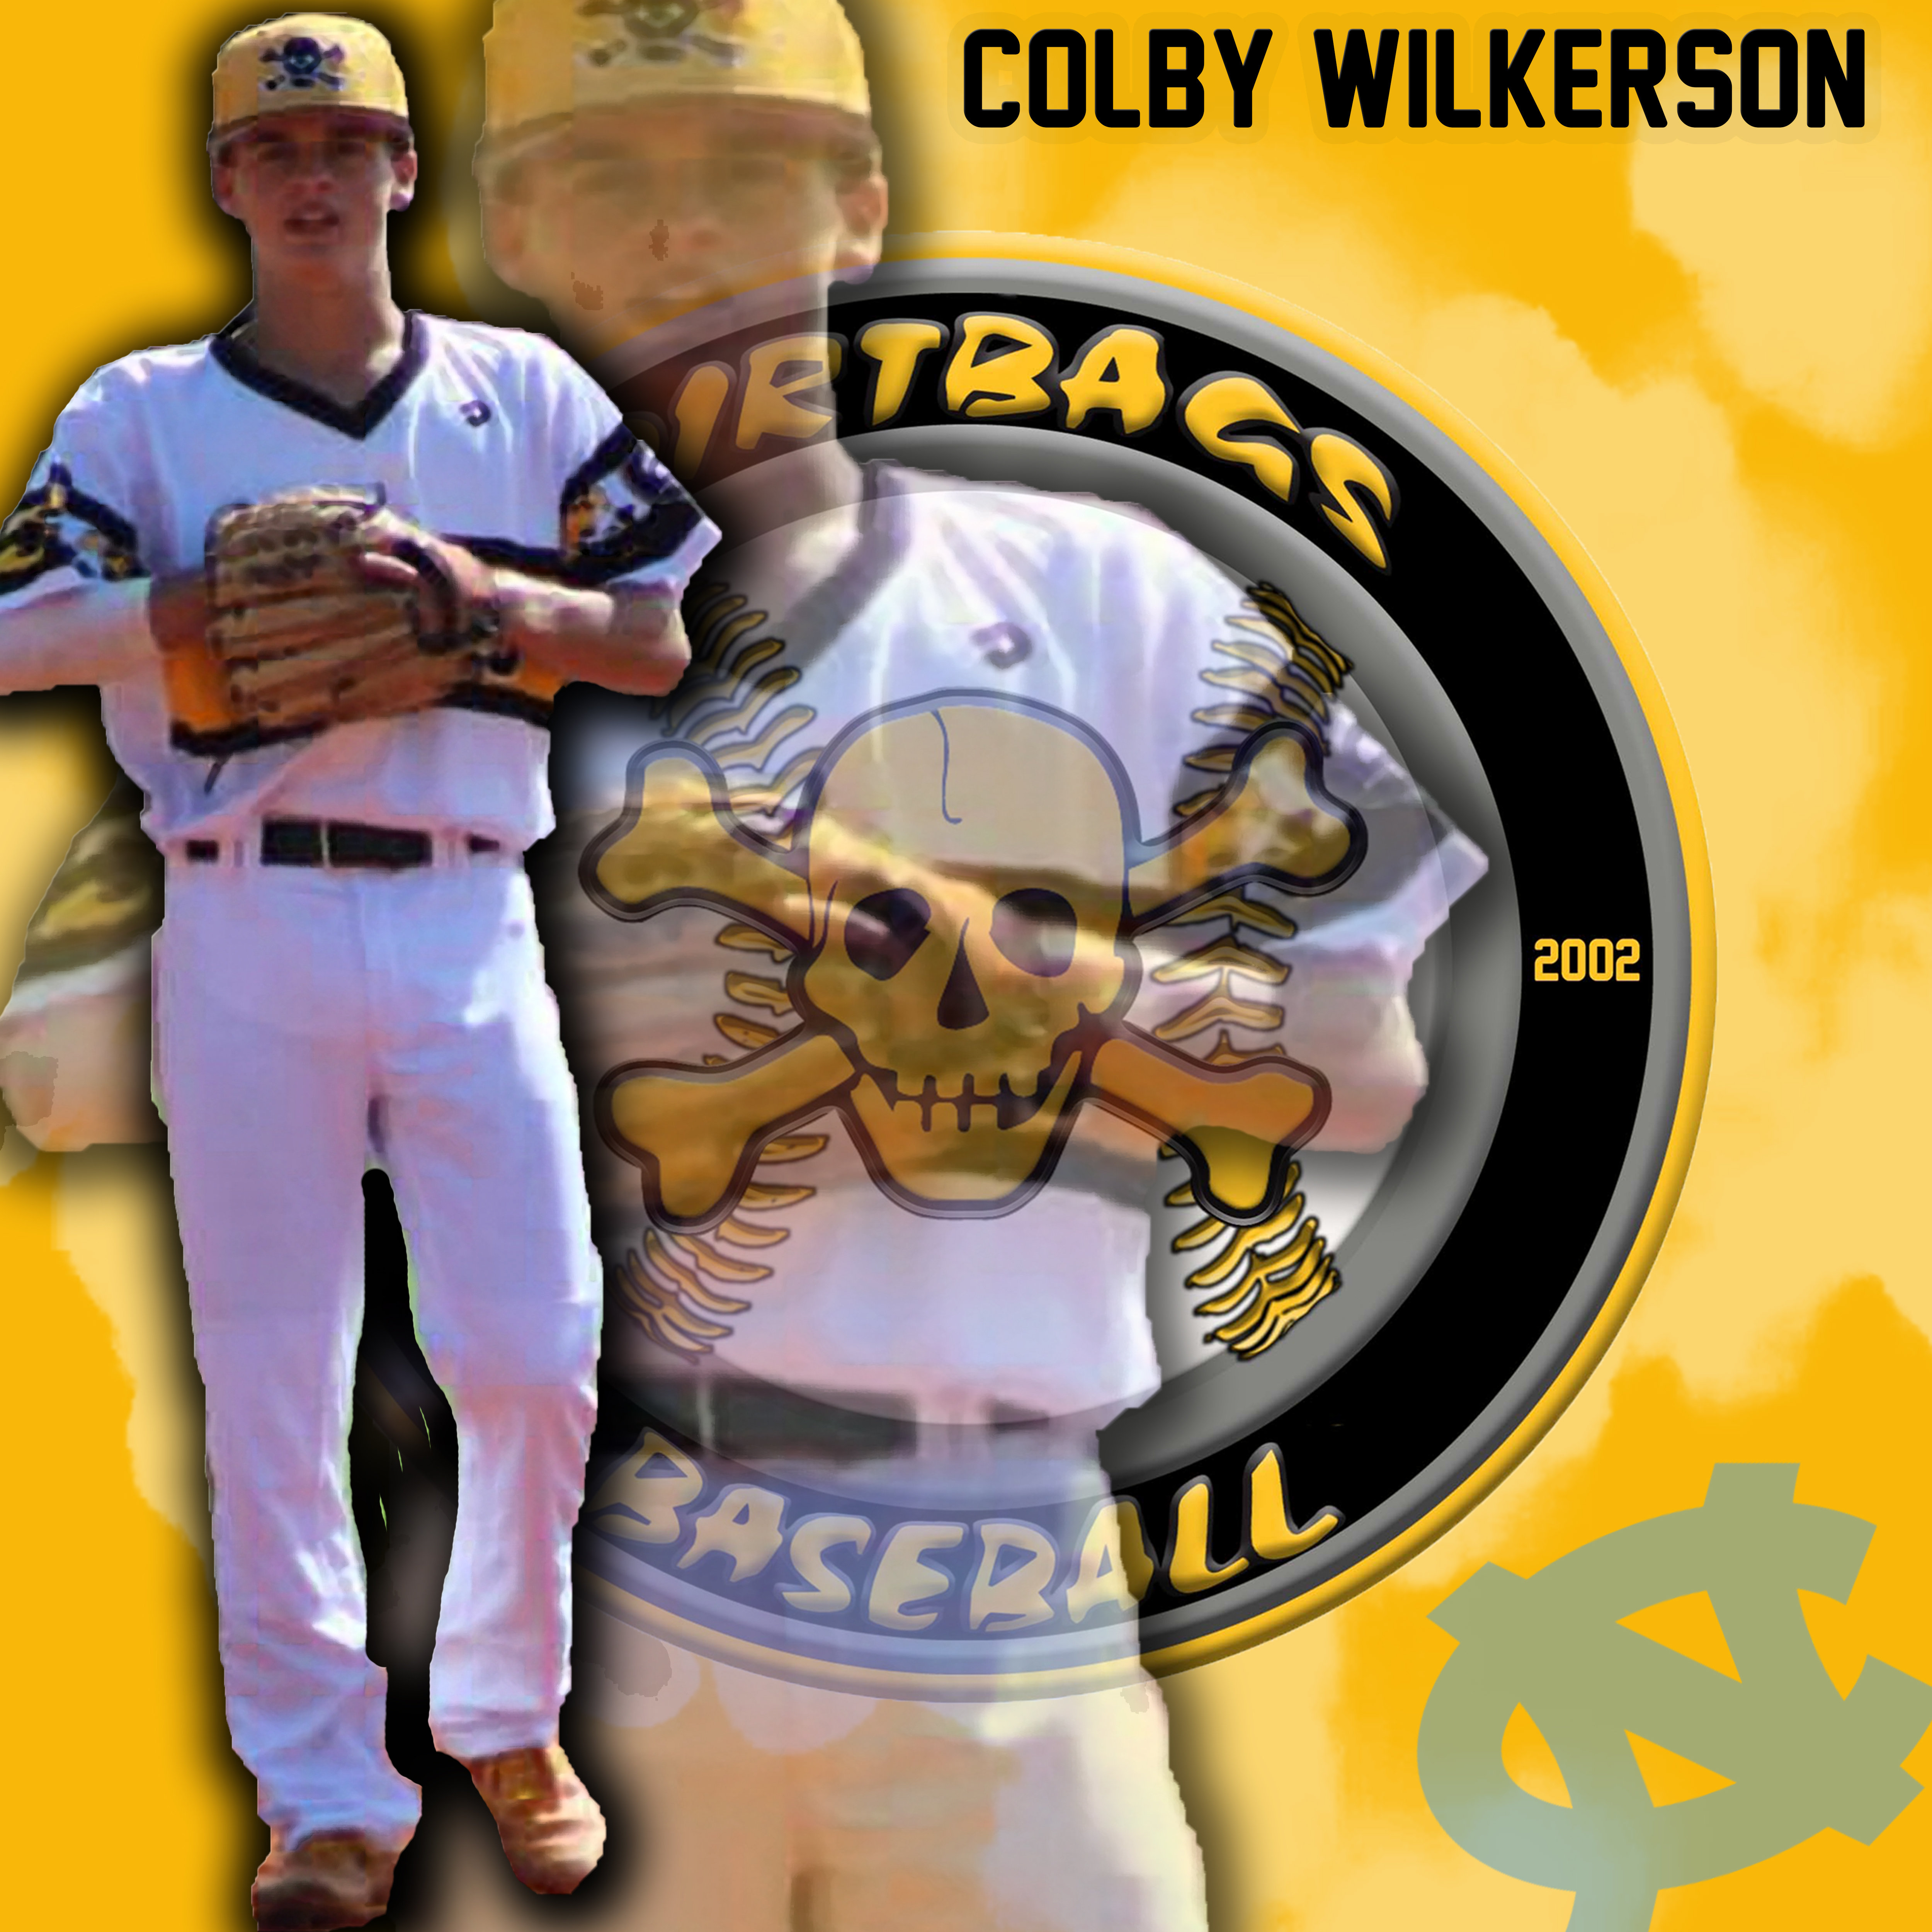 Testimonial Tuesday: Colby Wilkerson